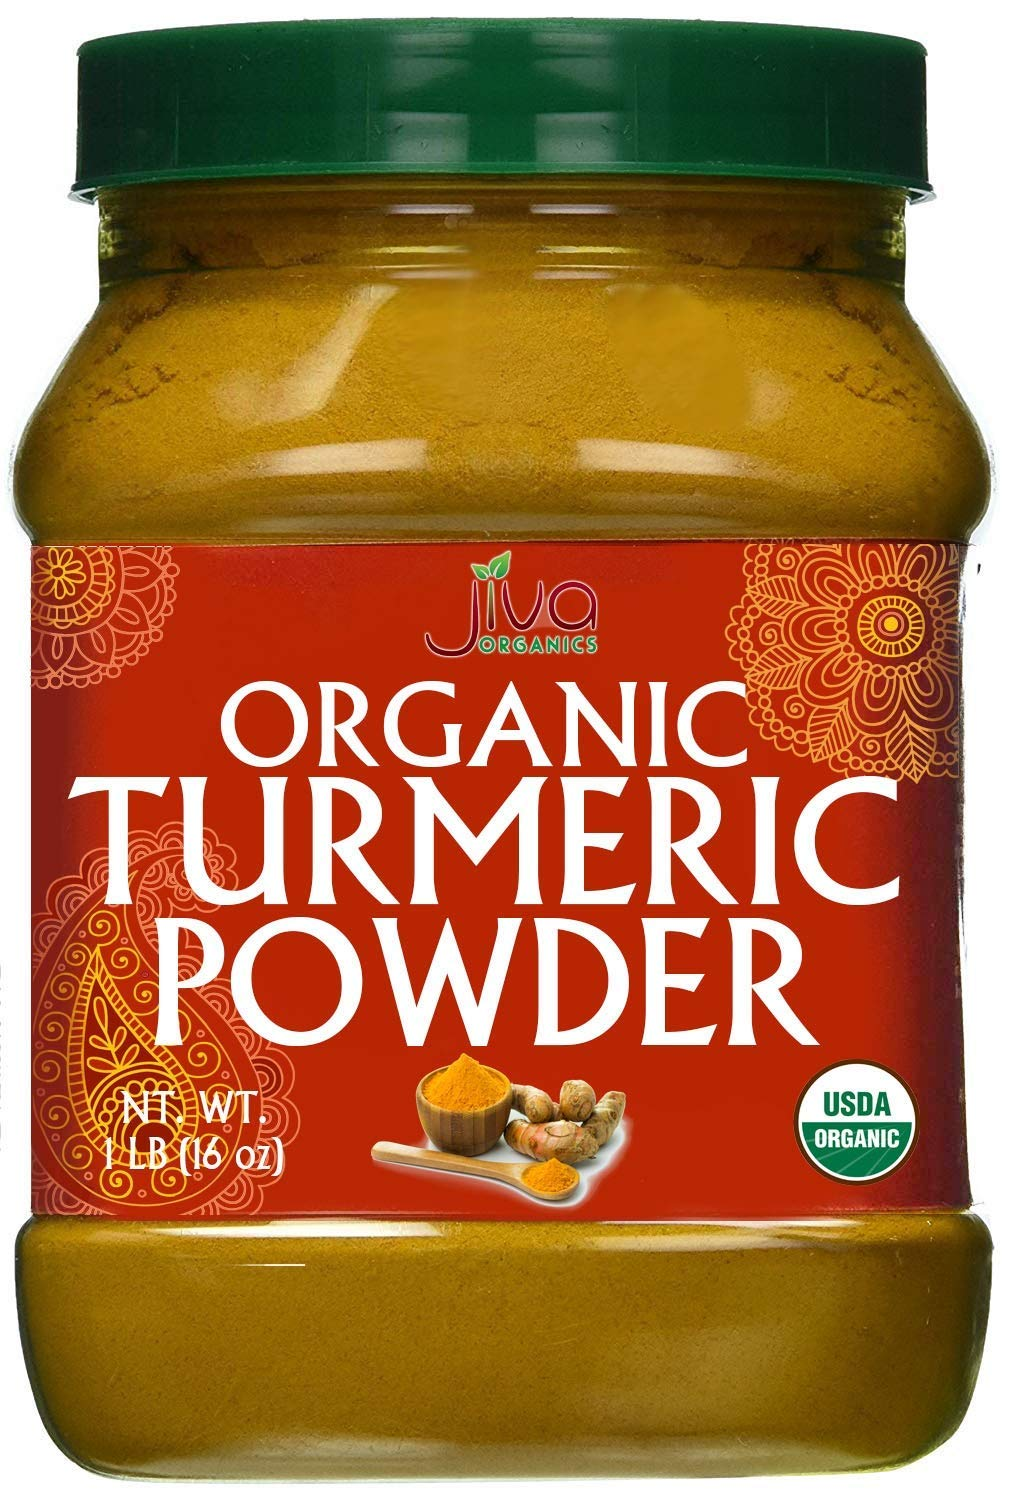 Jiva Organic Turmeric Powder - Max 86% Outlet sale feature OFF 1 with Tumeric 100% Raw Pound Jar